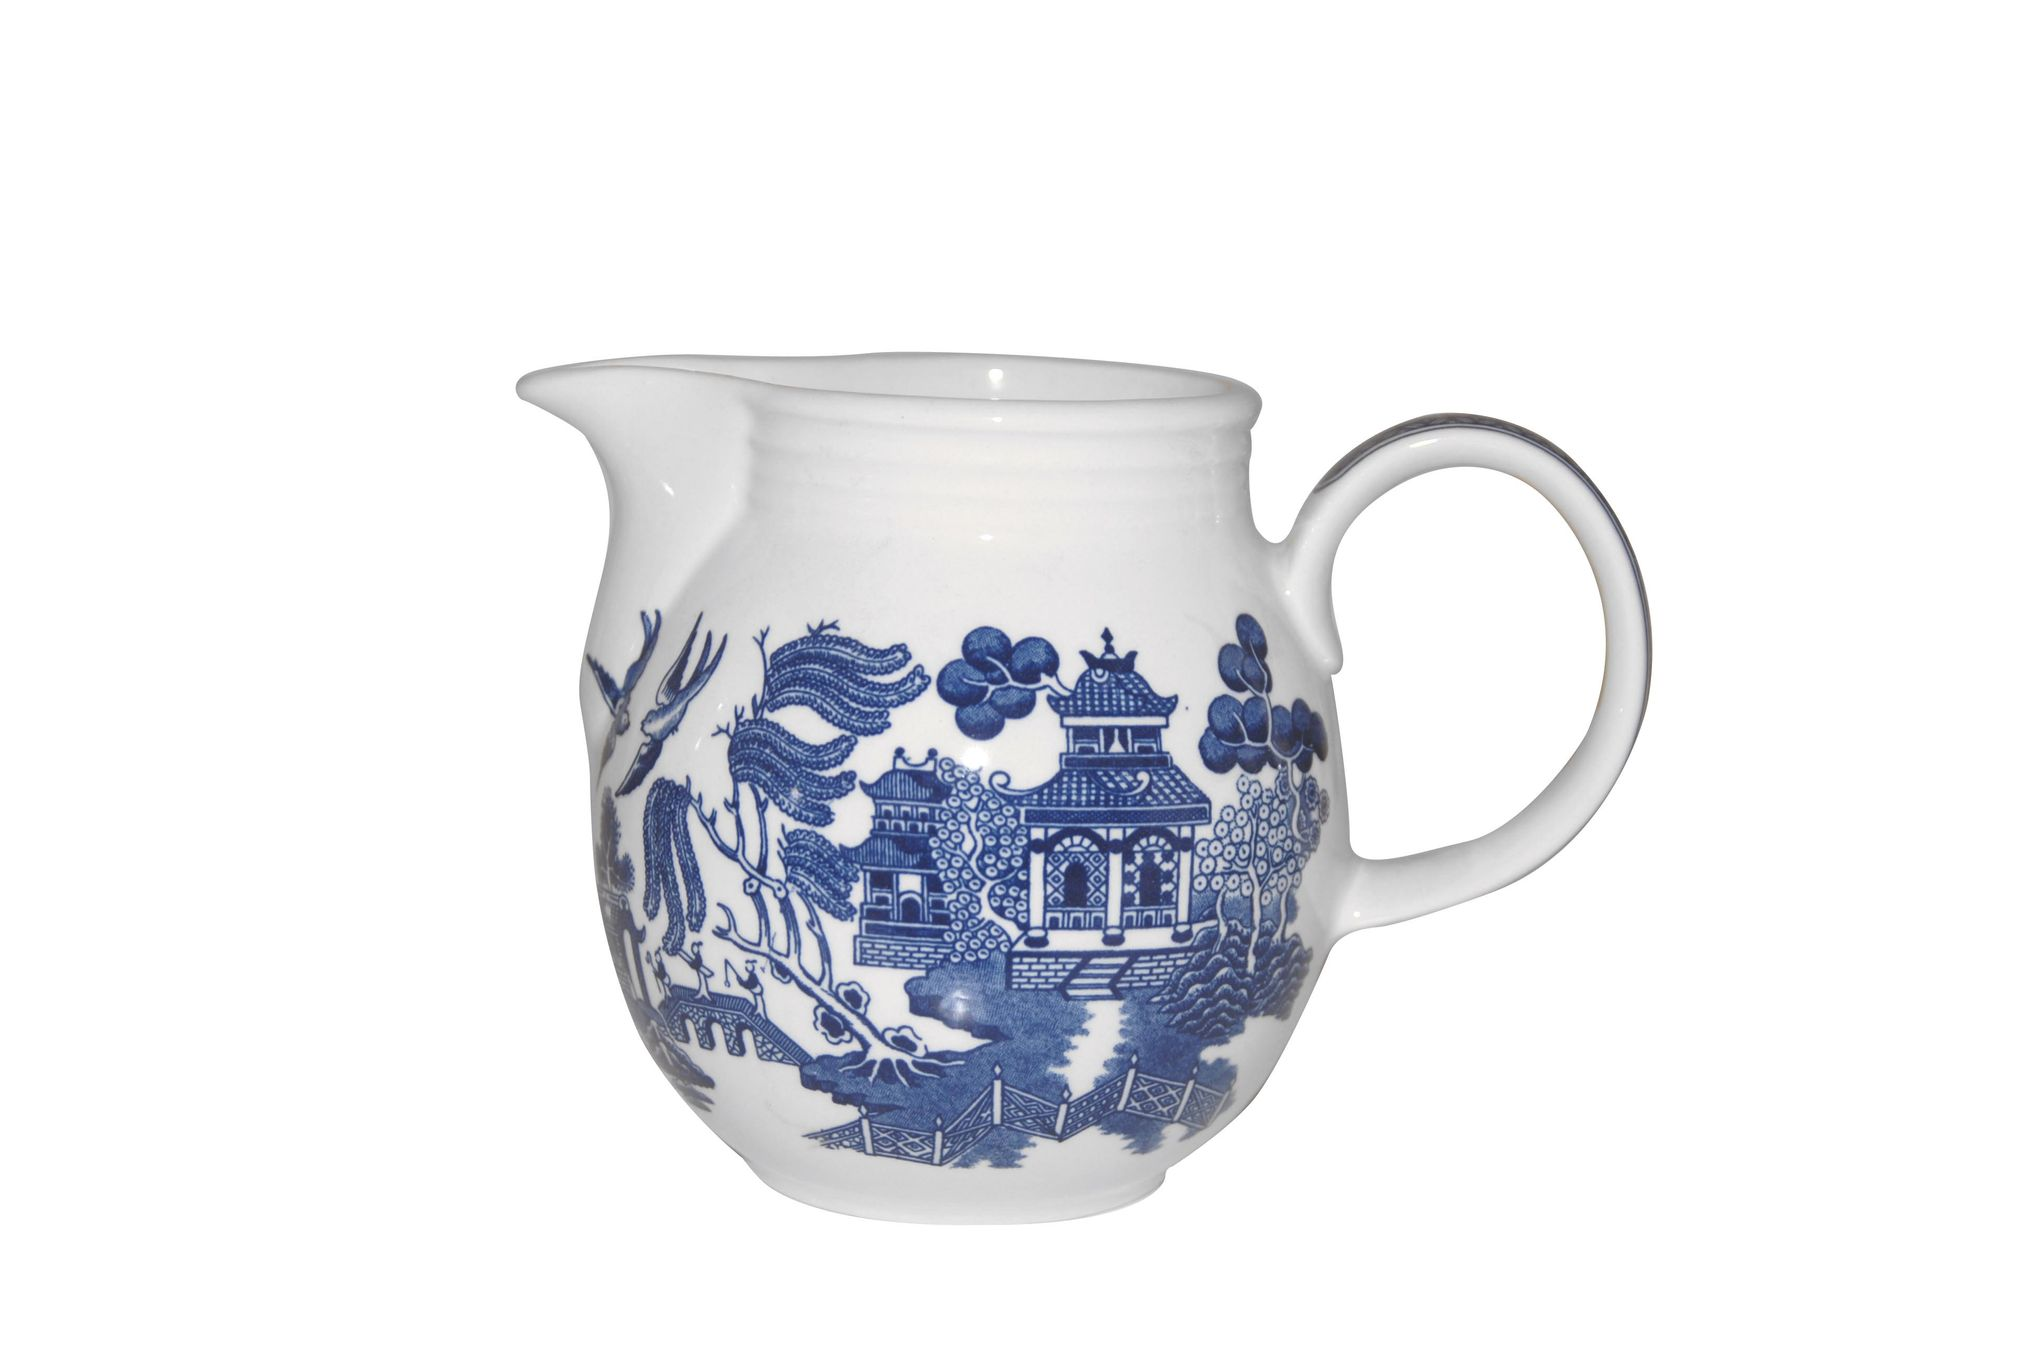 Churchill Blue Willow Jug 1 1/2pt thumb 1